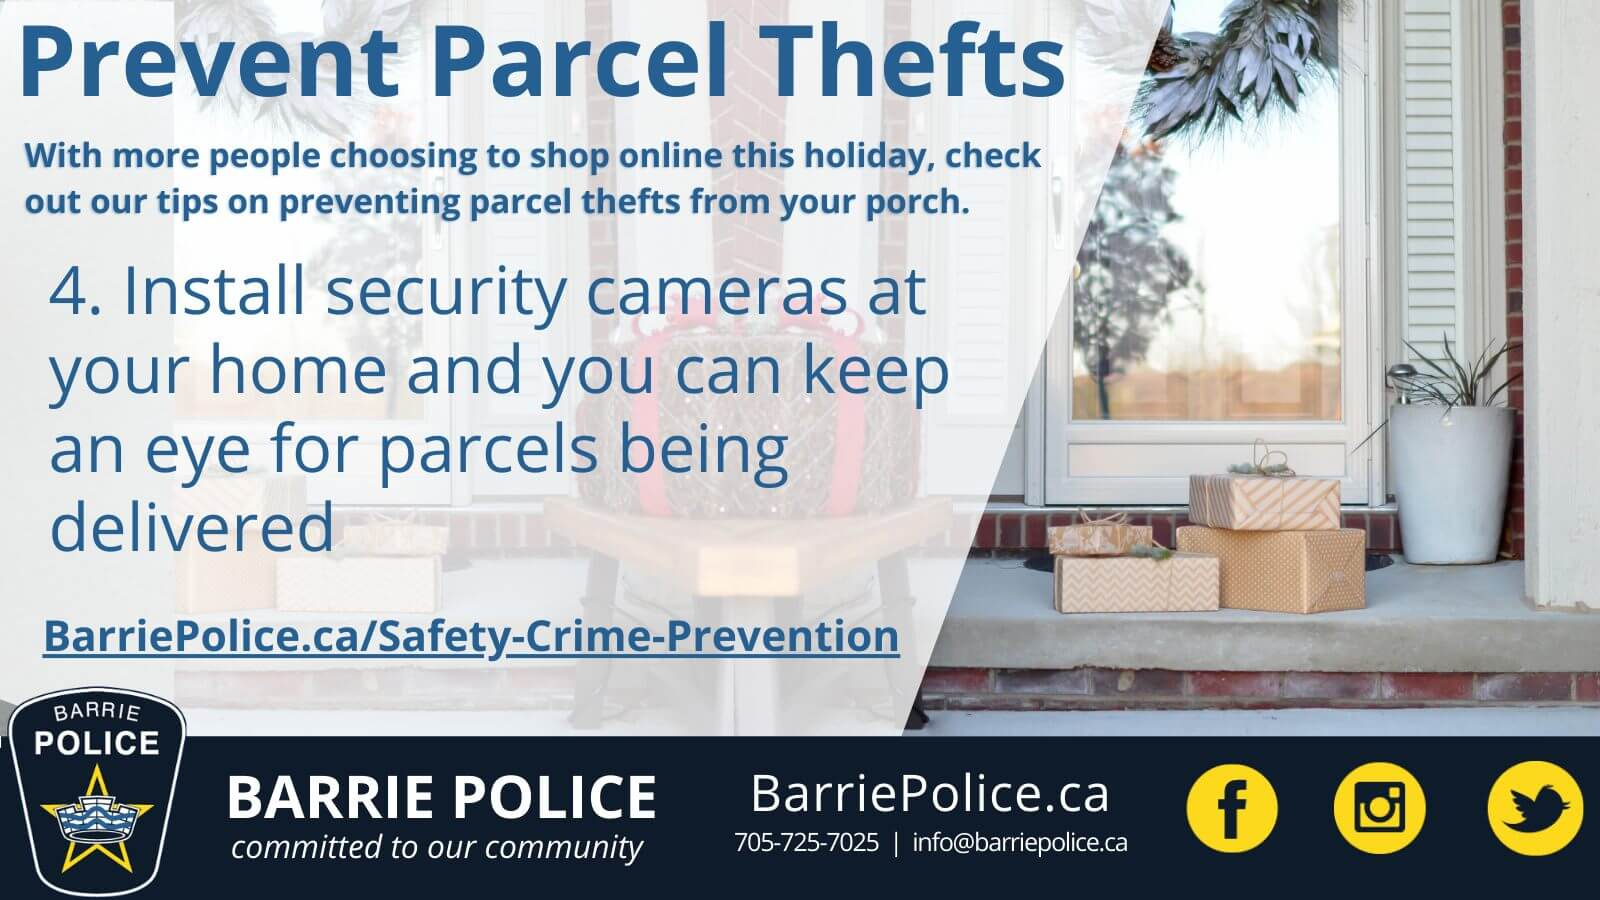 Prevent Parcel Thefts Tip 4: Use security cameras